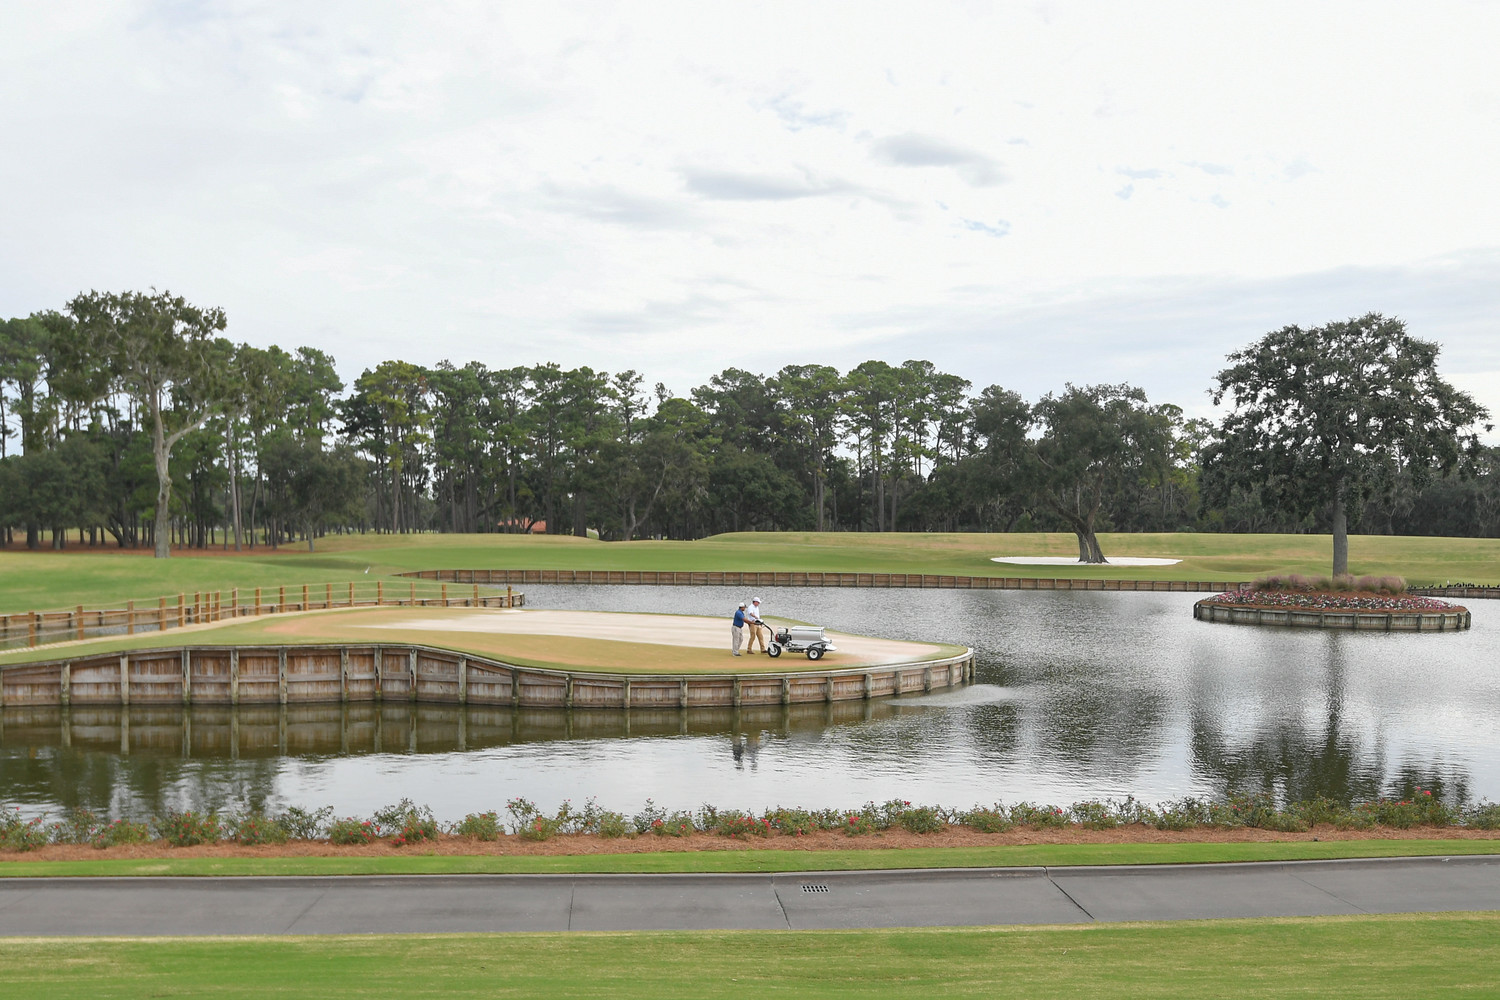 Preparations are well underway at TPC Sawgrass to ensure ideal tournament conditions for THE PLAYERS 2019.